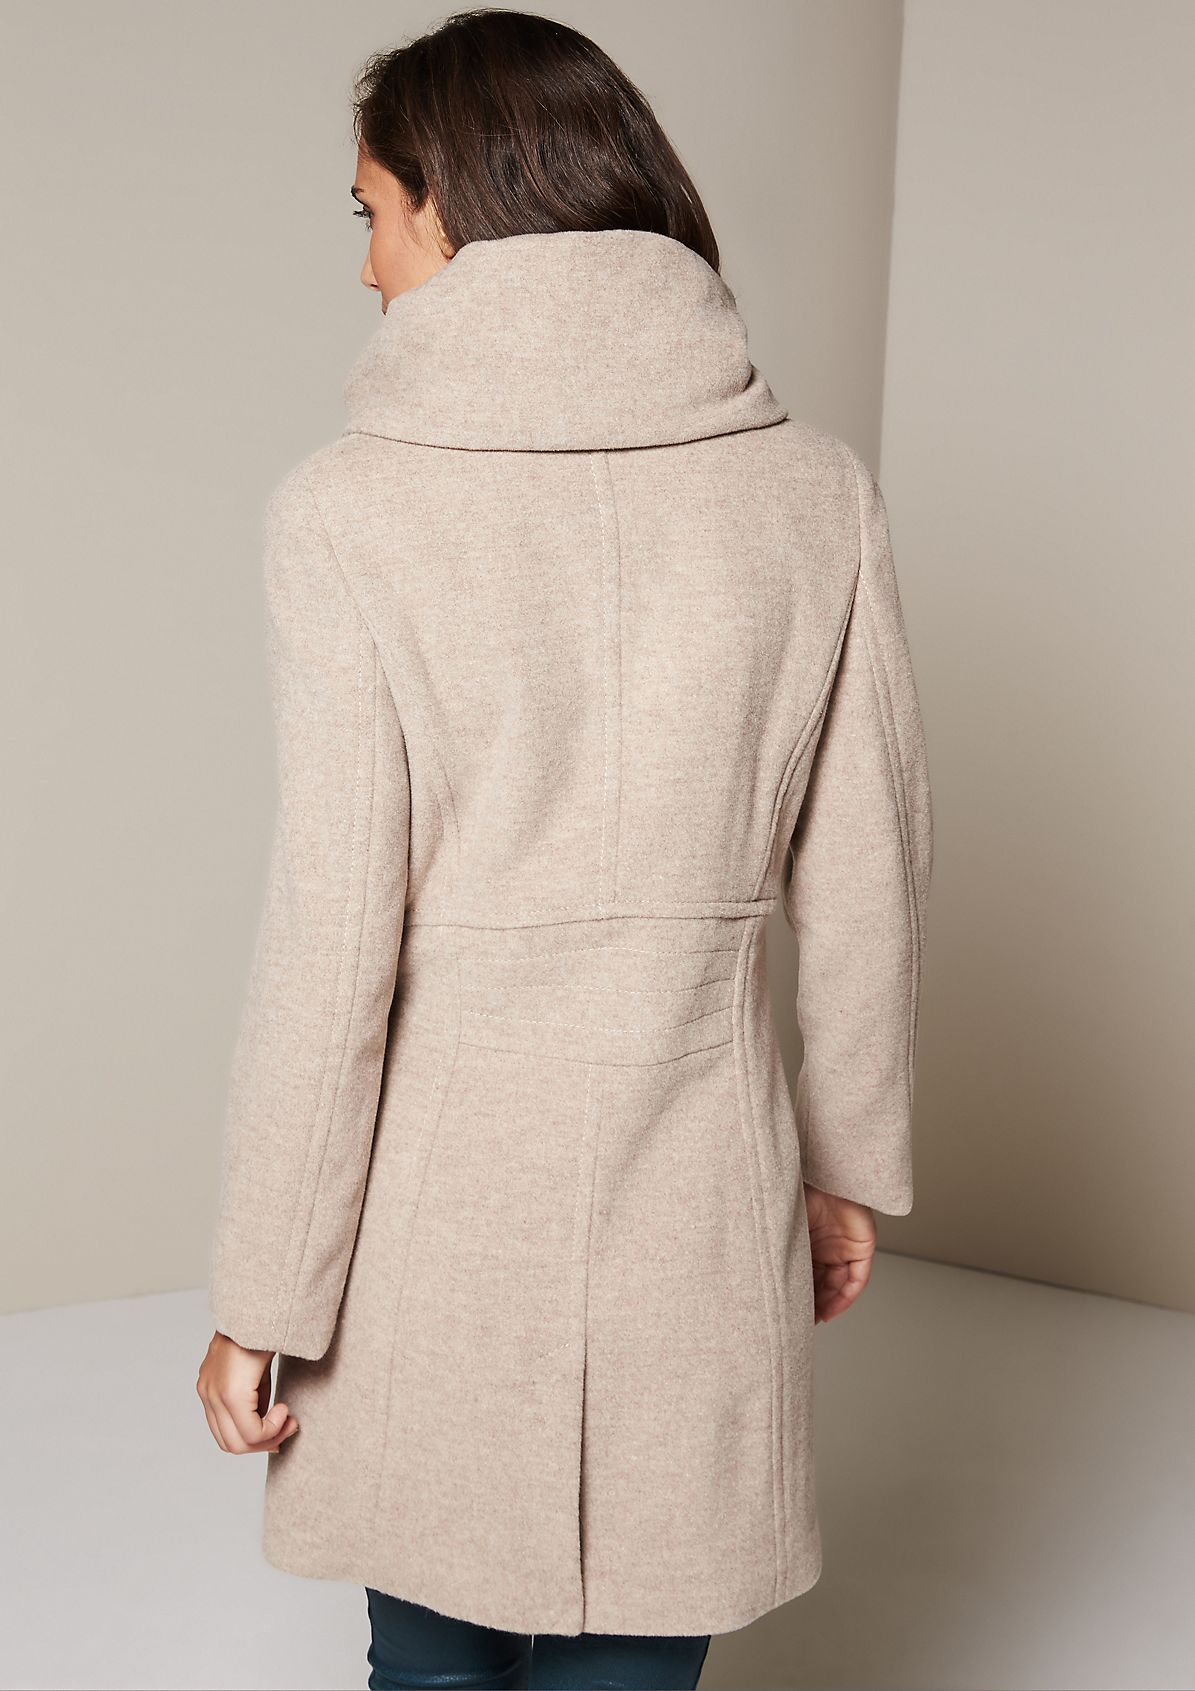 Cosy winter coat with a roll neck collar from s.Oliver